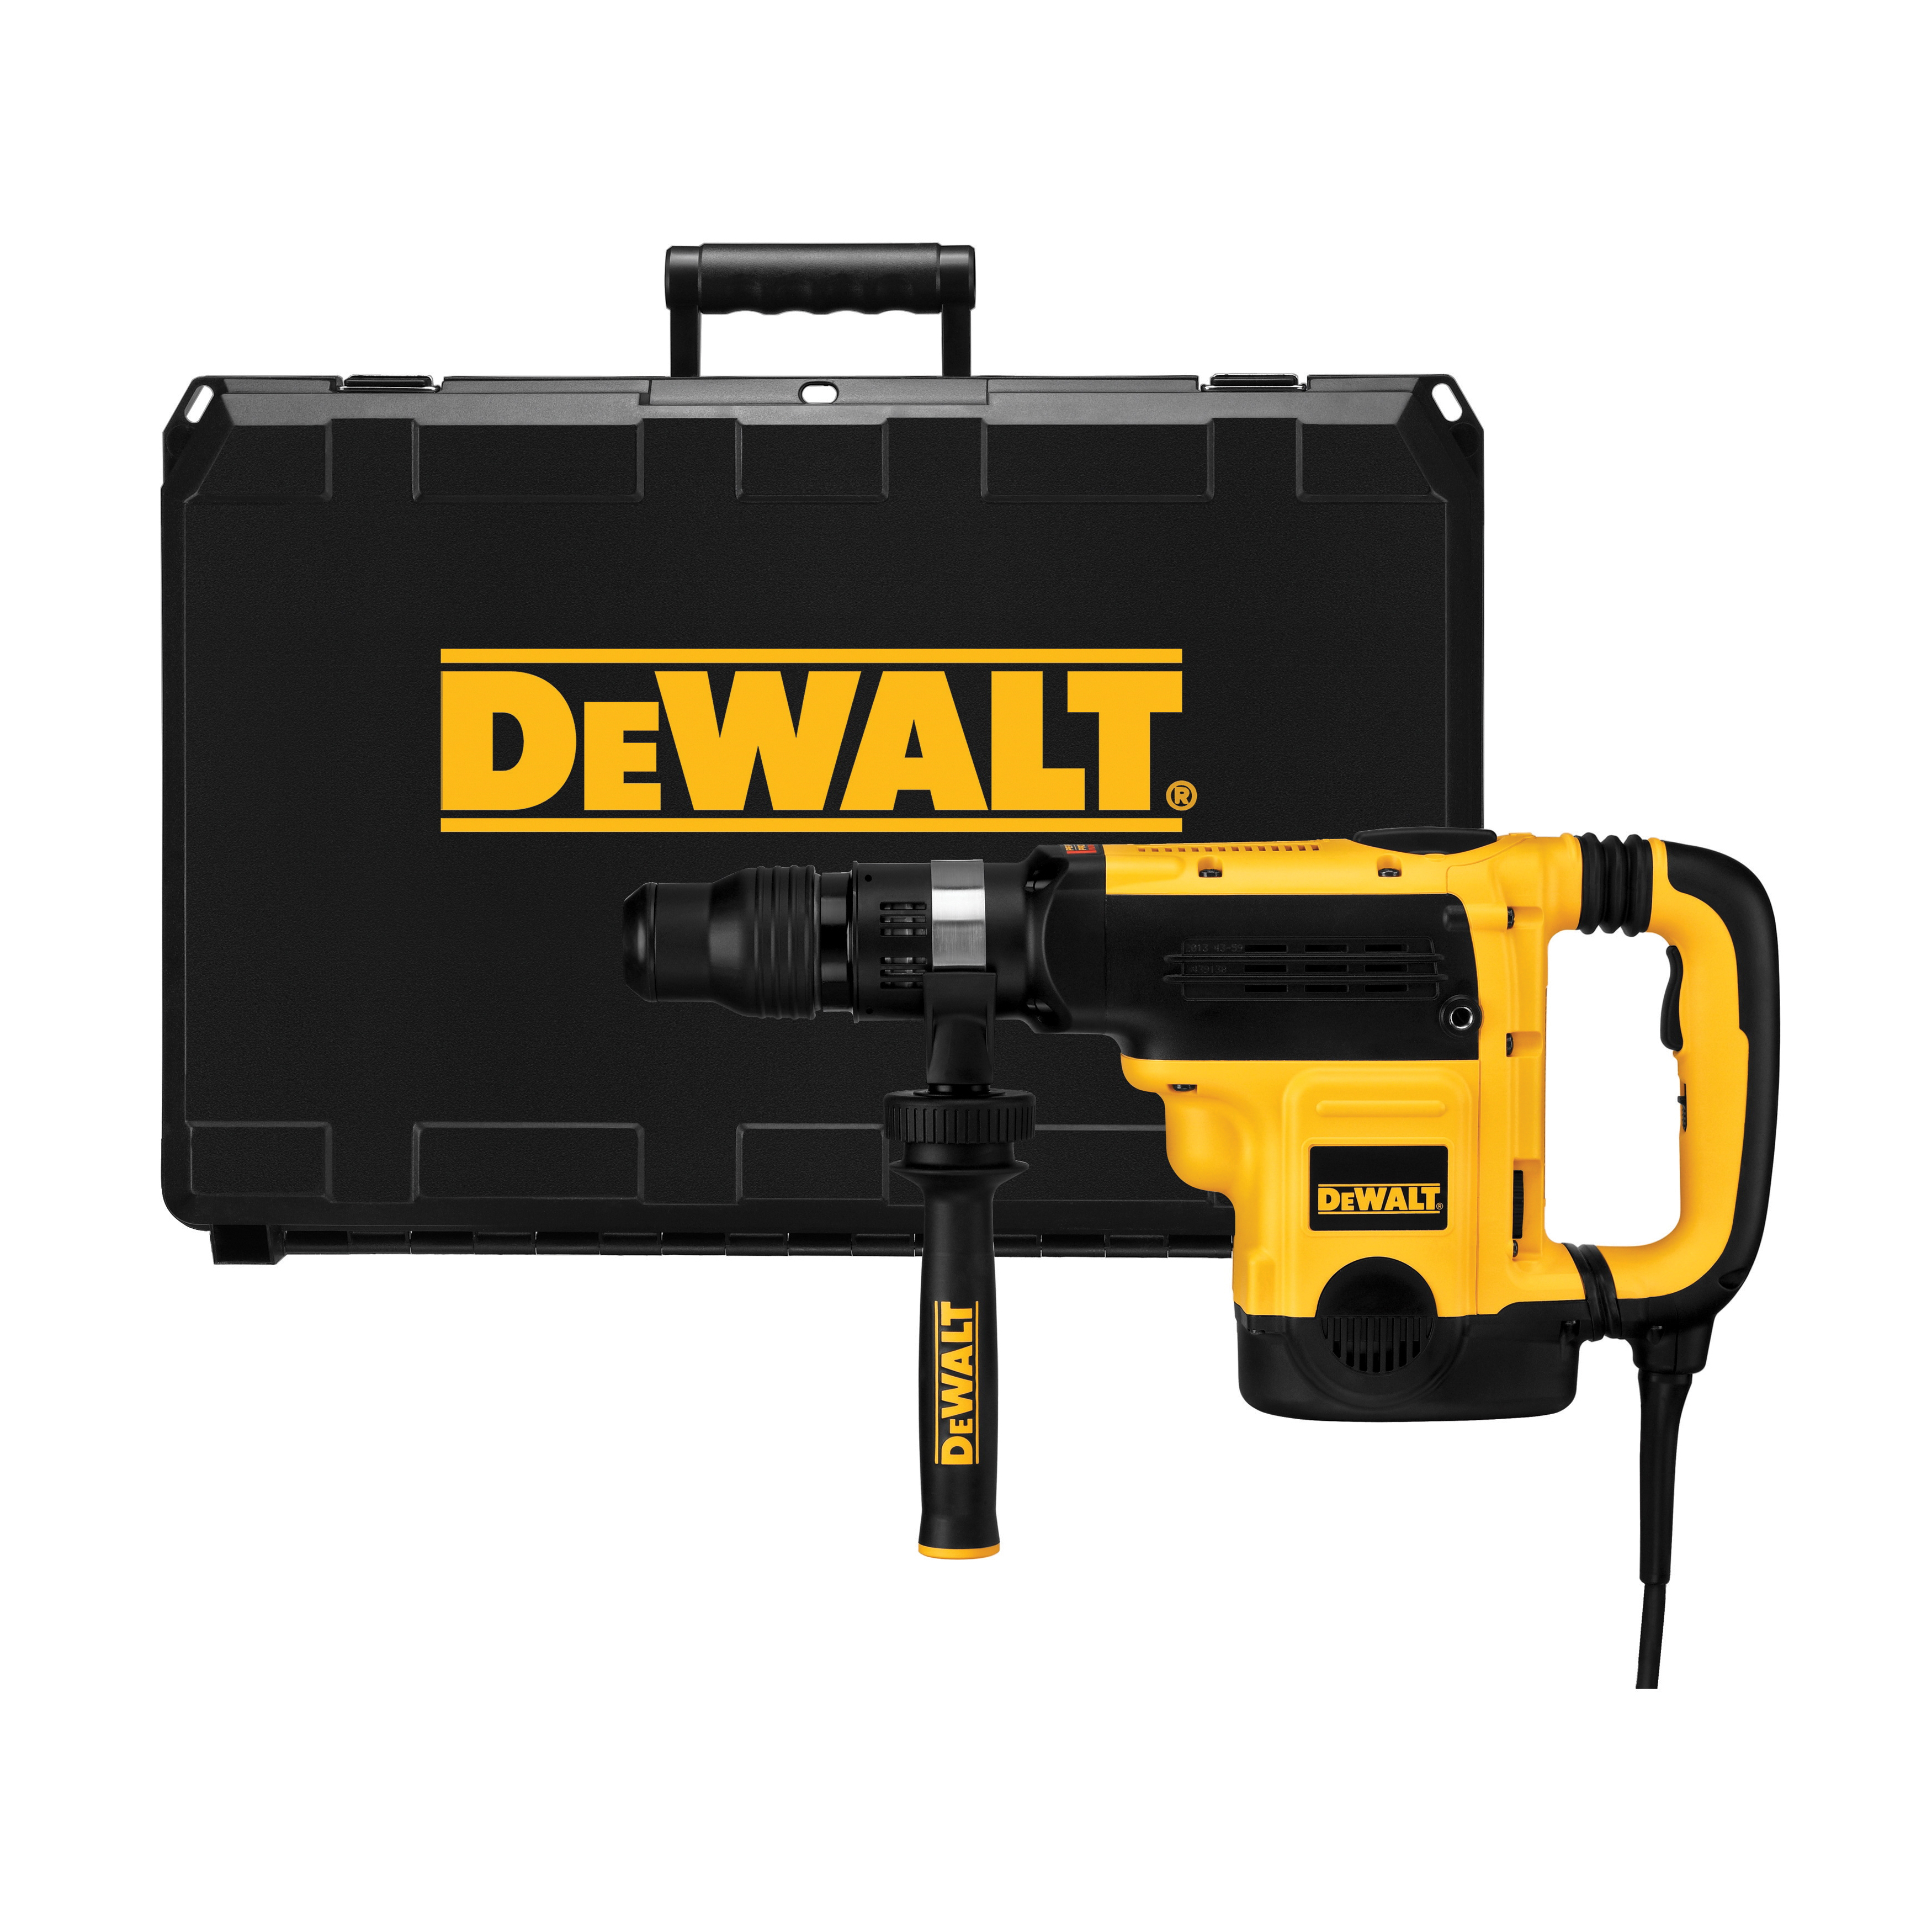 DeWALT® D25721K Combination Rotary Hammer Kit, 1 in SDS Max® Chuck, 1260 to 2520 bpm, 137 to 275 rpm No-Load, 6 in Max Core Bit Compatibility, 1-7/8 in Max Solid Bit Capacity, 20-1/2 in OAL